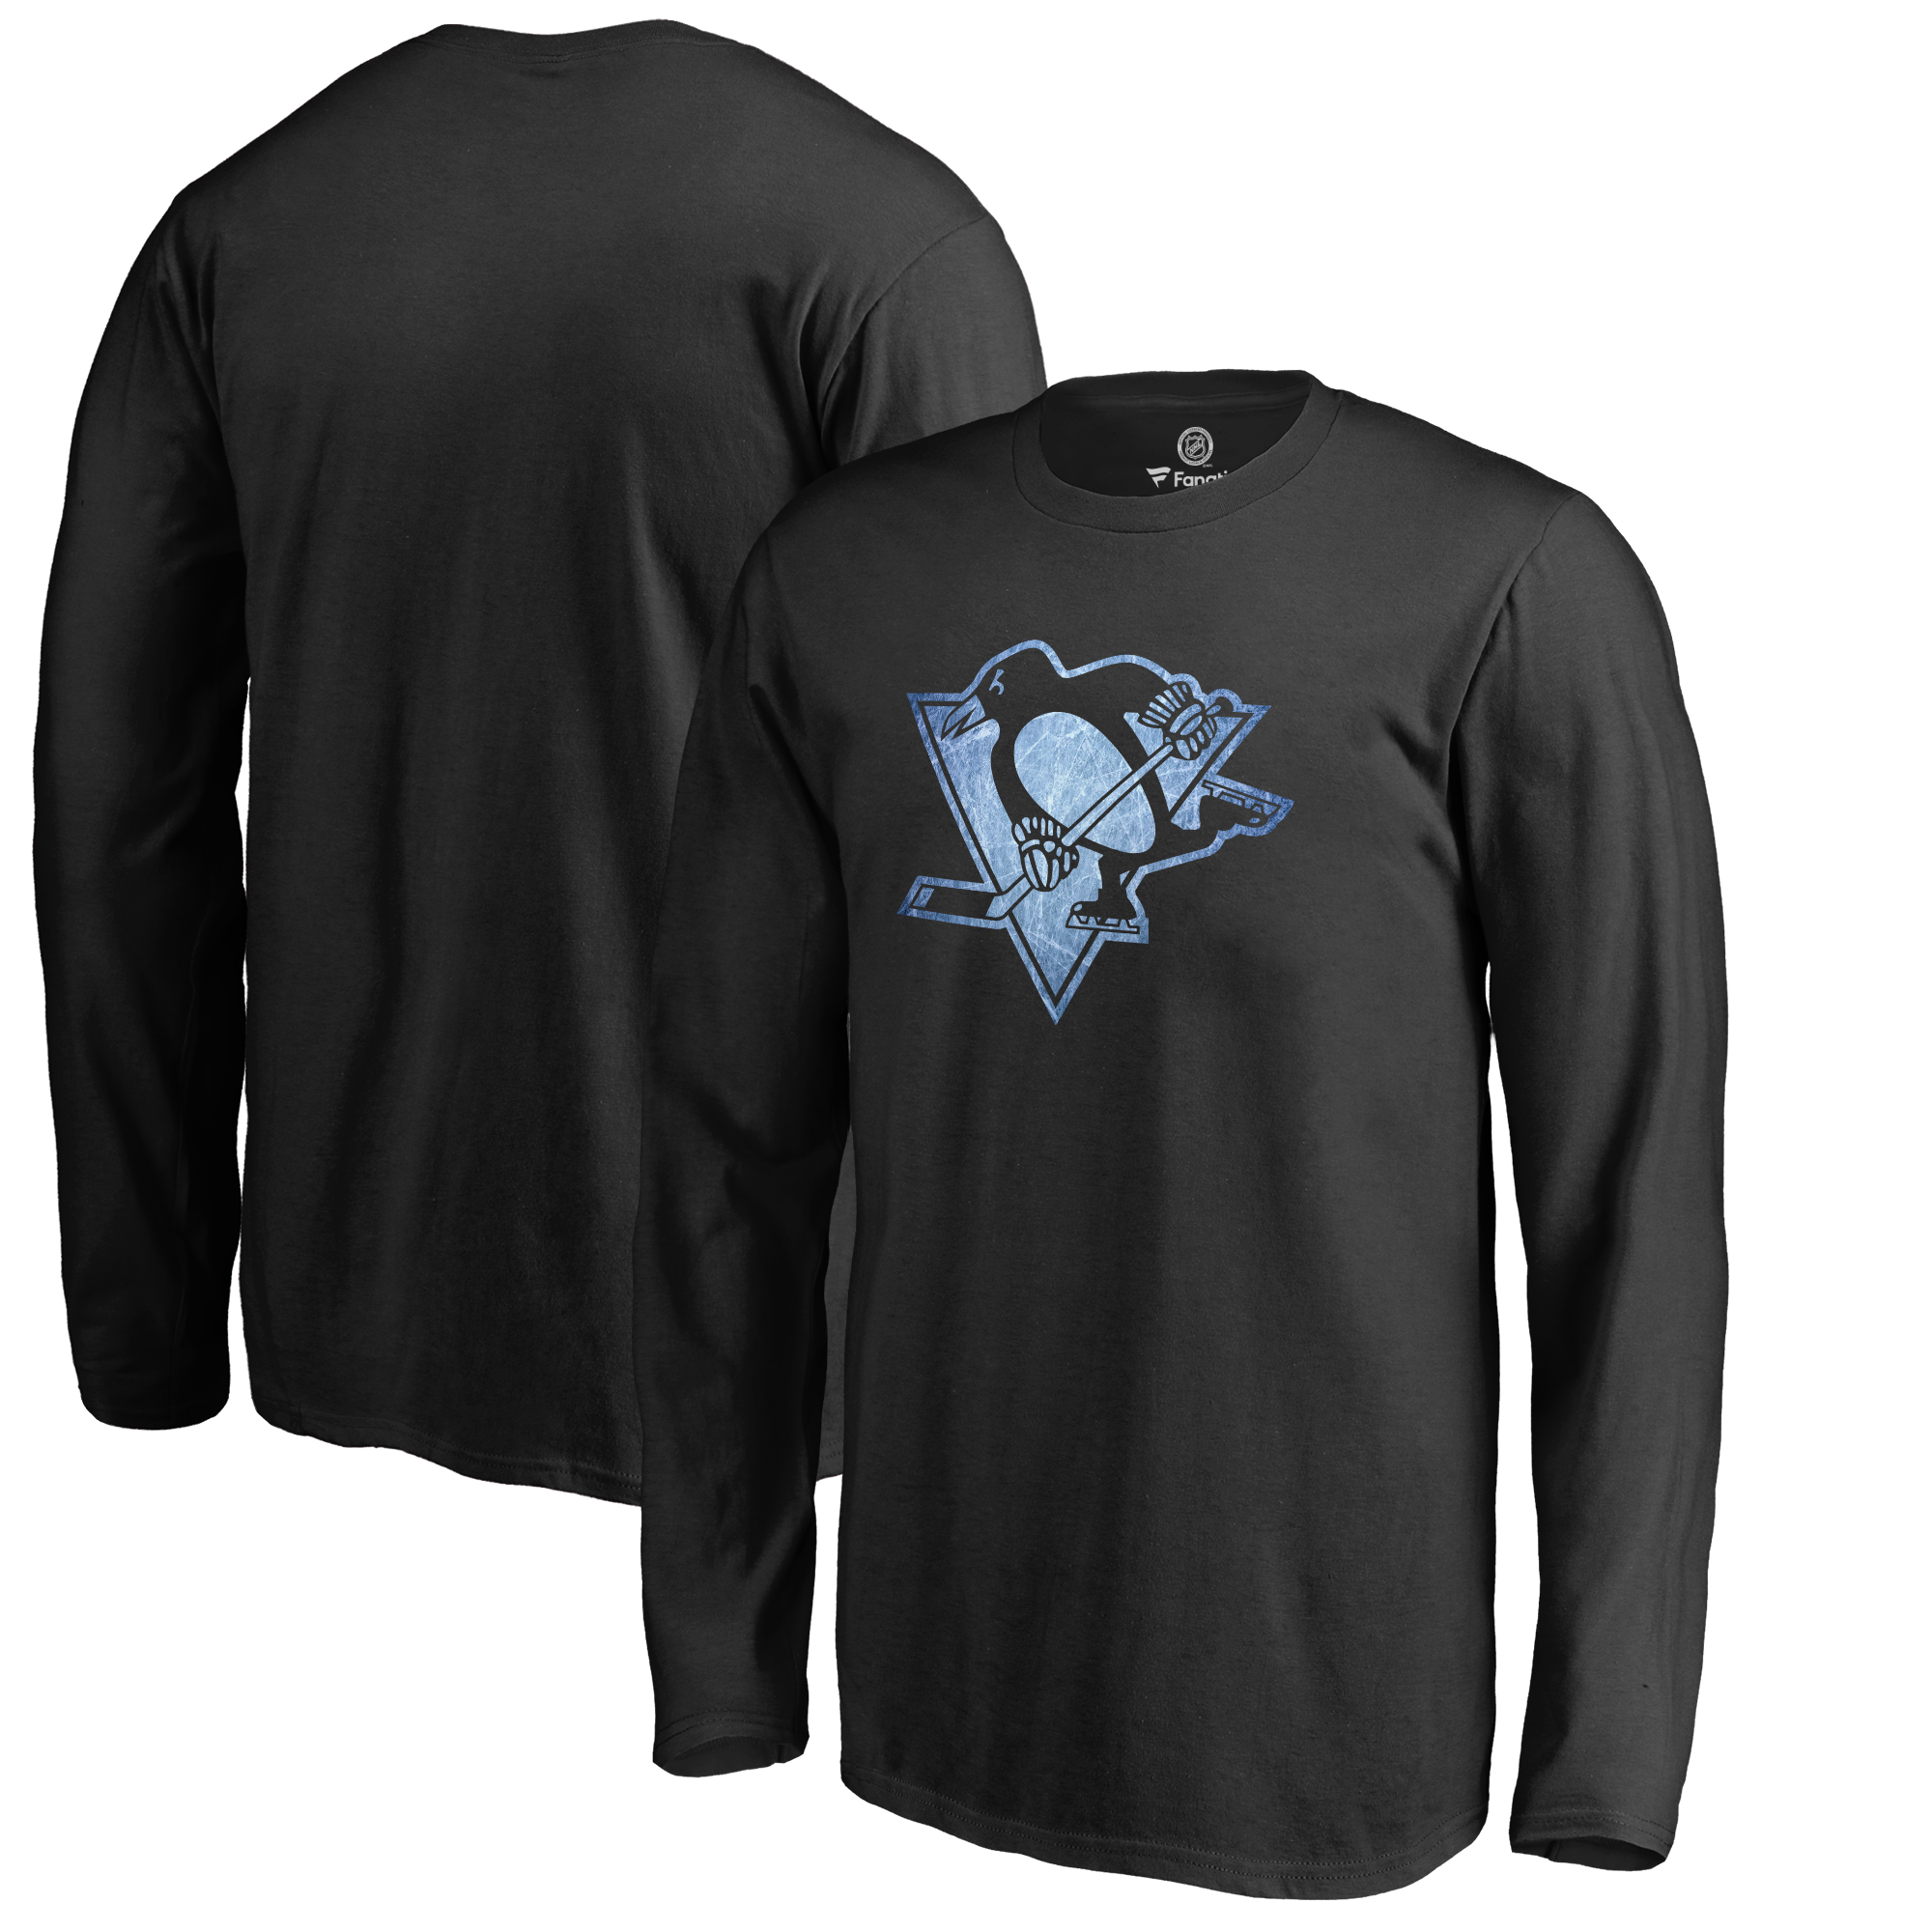 Pittsburgh Penguins Youth Pond Hockey Long Sleeve T-Shirt Black by Football Fanatics/Ruppshirts